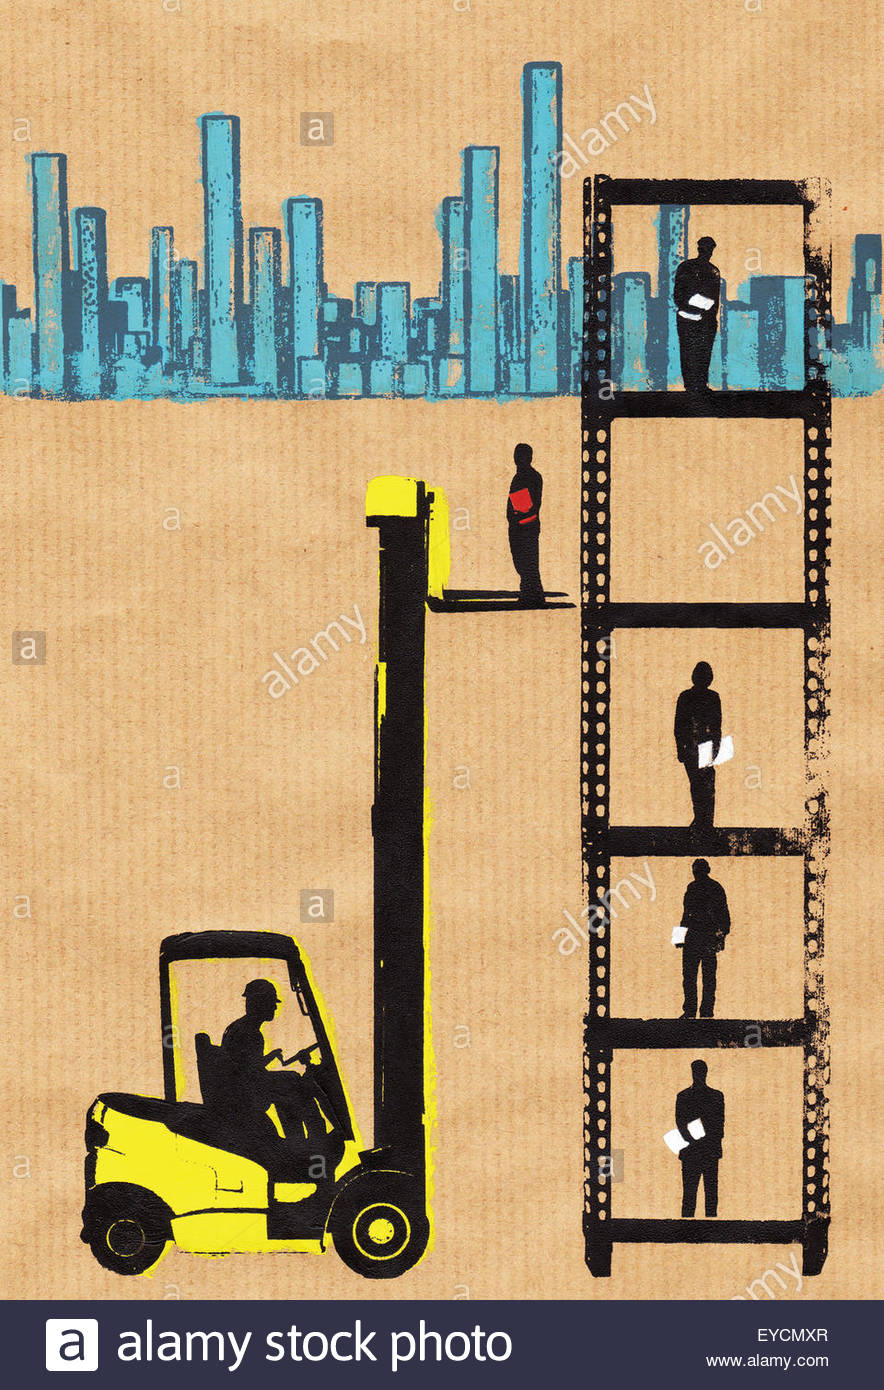 Forklift truck lifting workers up career ladder - Stock Image